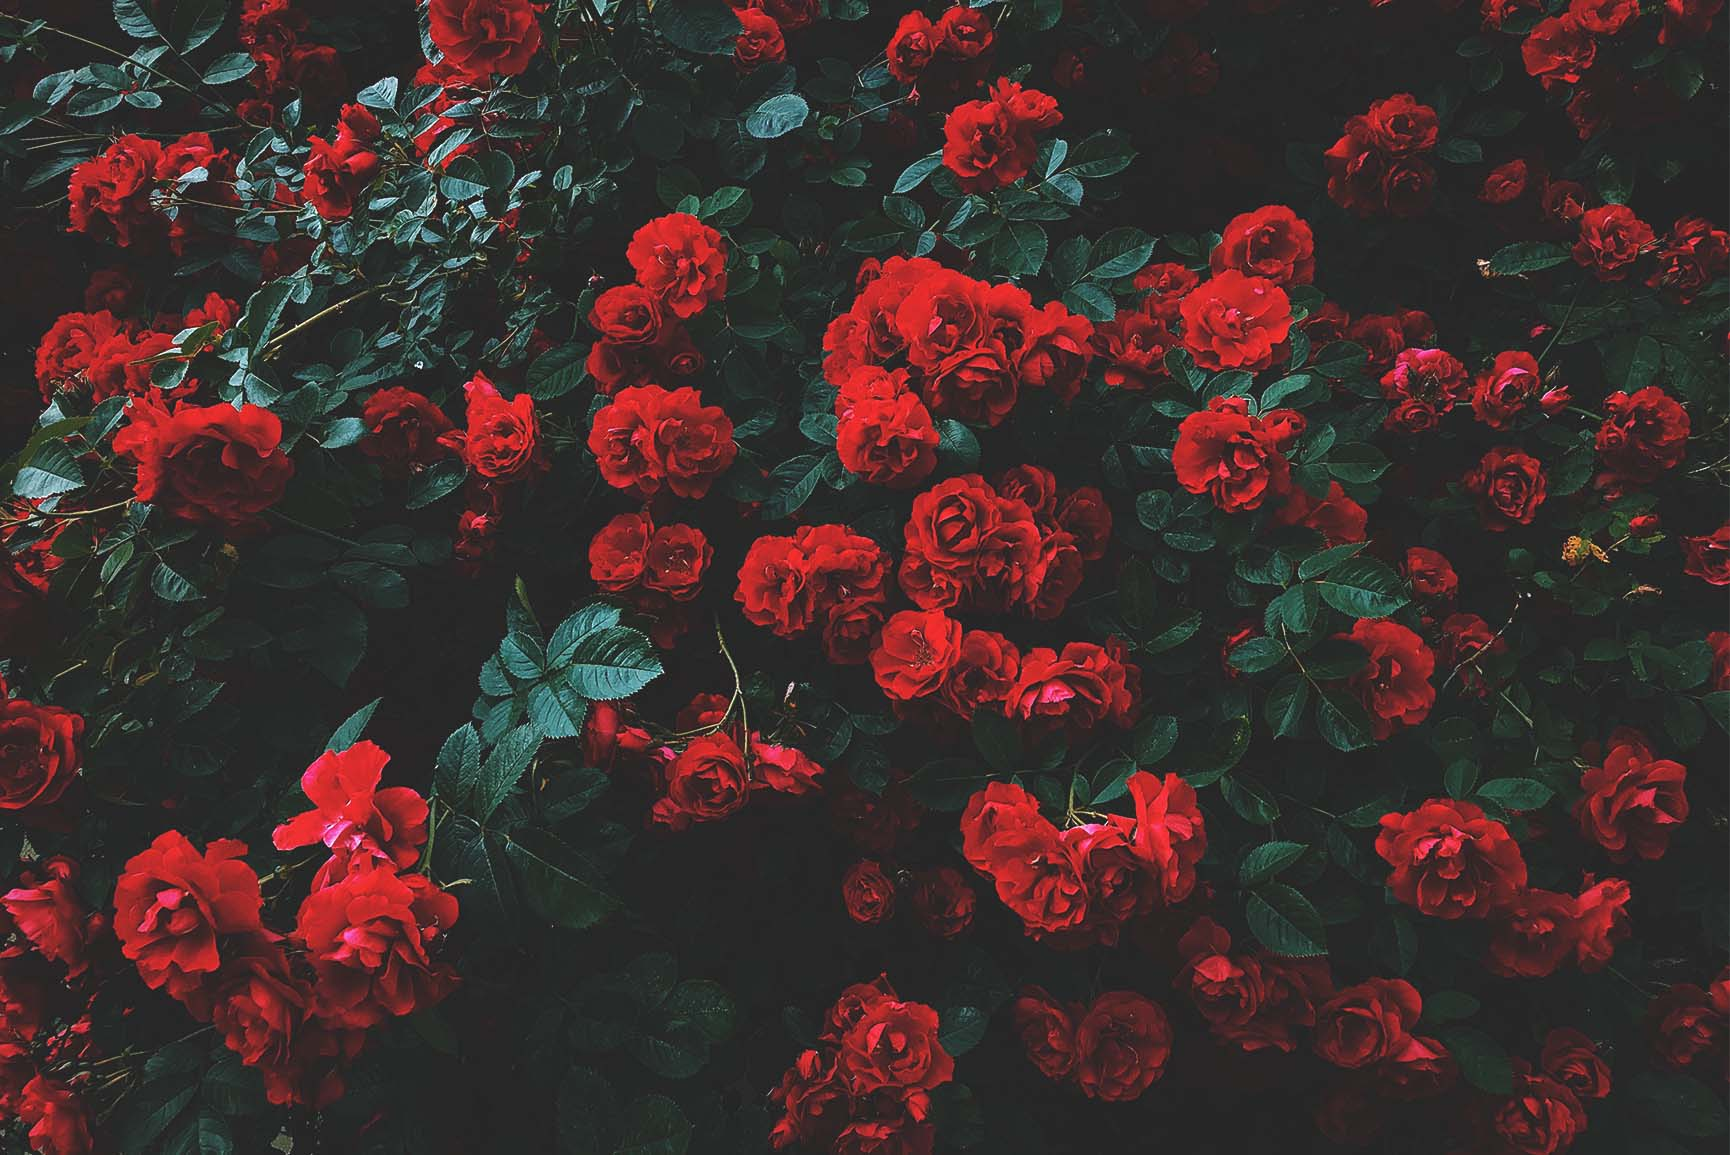 A Dozen Red Roses Iphone Wallpapers For Valentine S Day Preppy